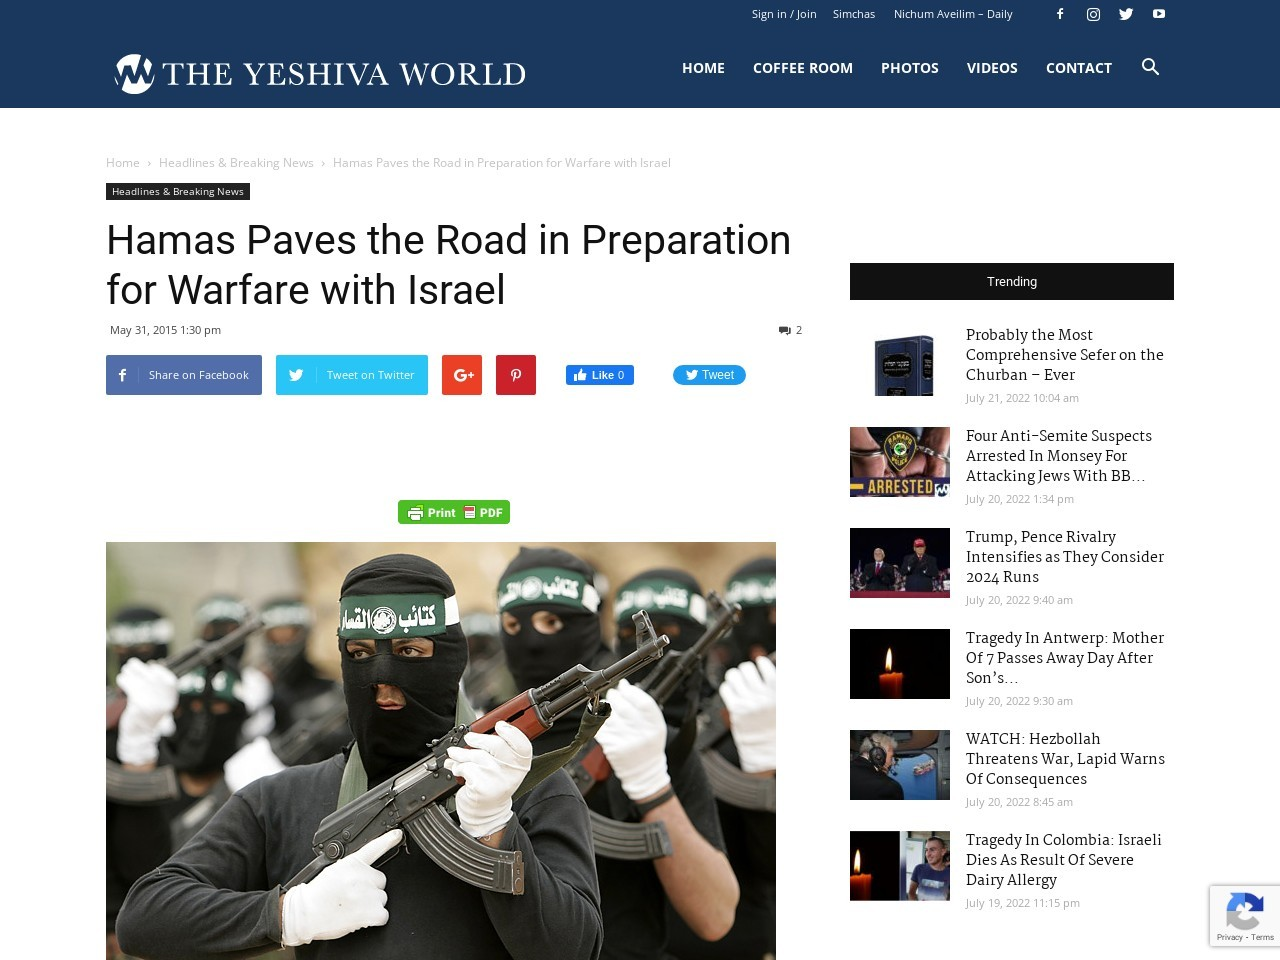 Hamas Paves the Road in Preparation for Warfare with Israel